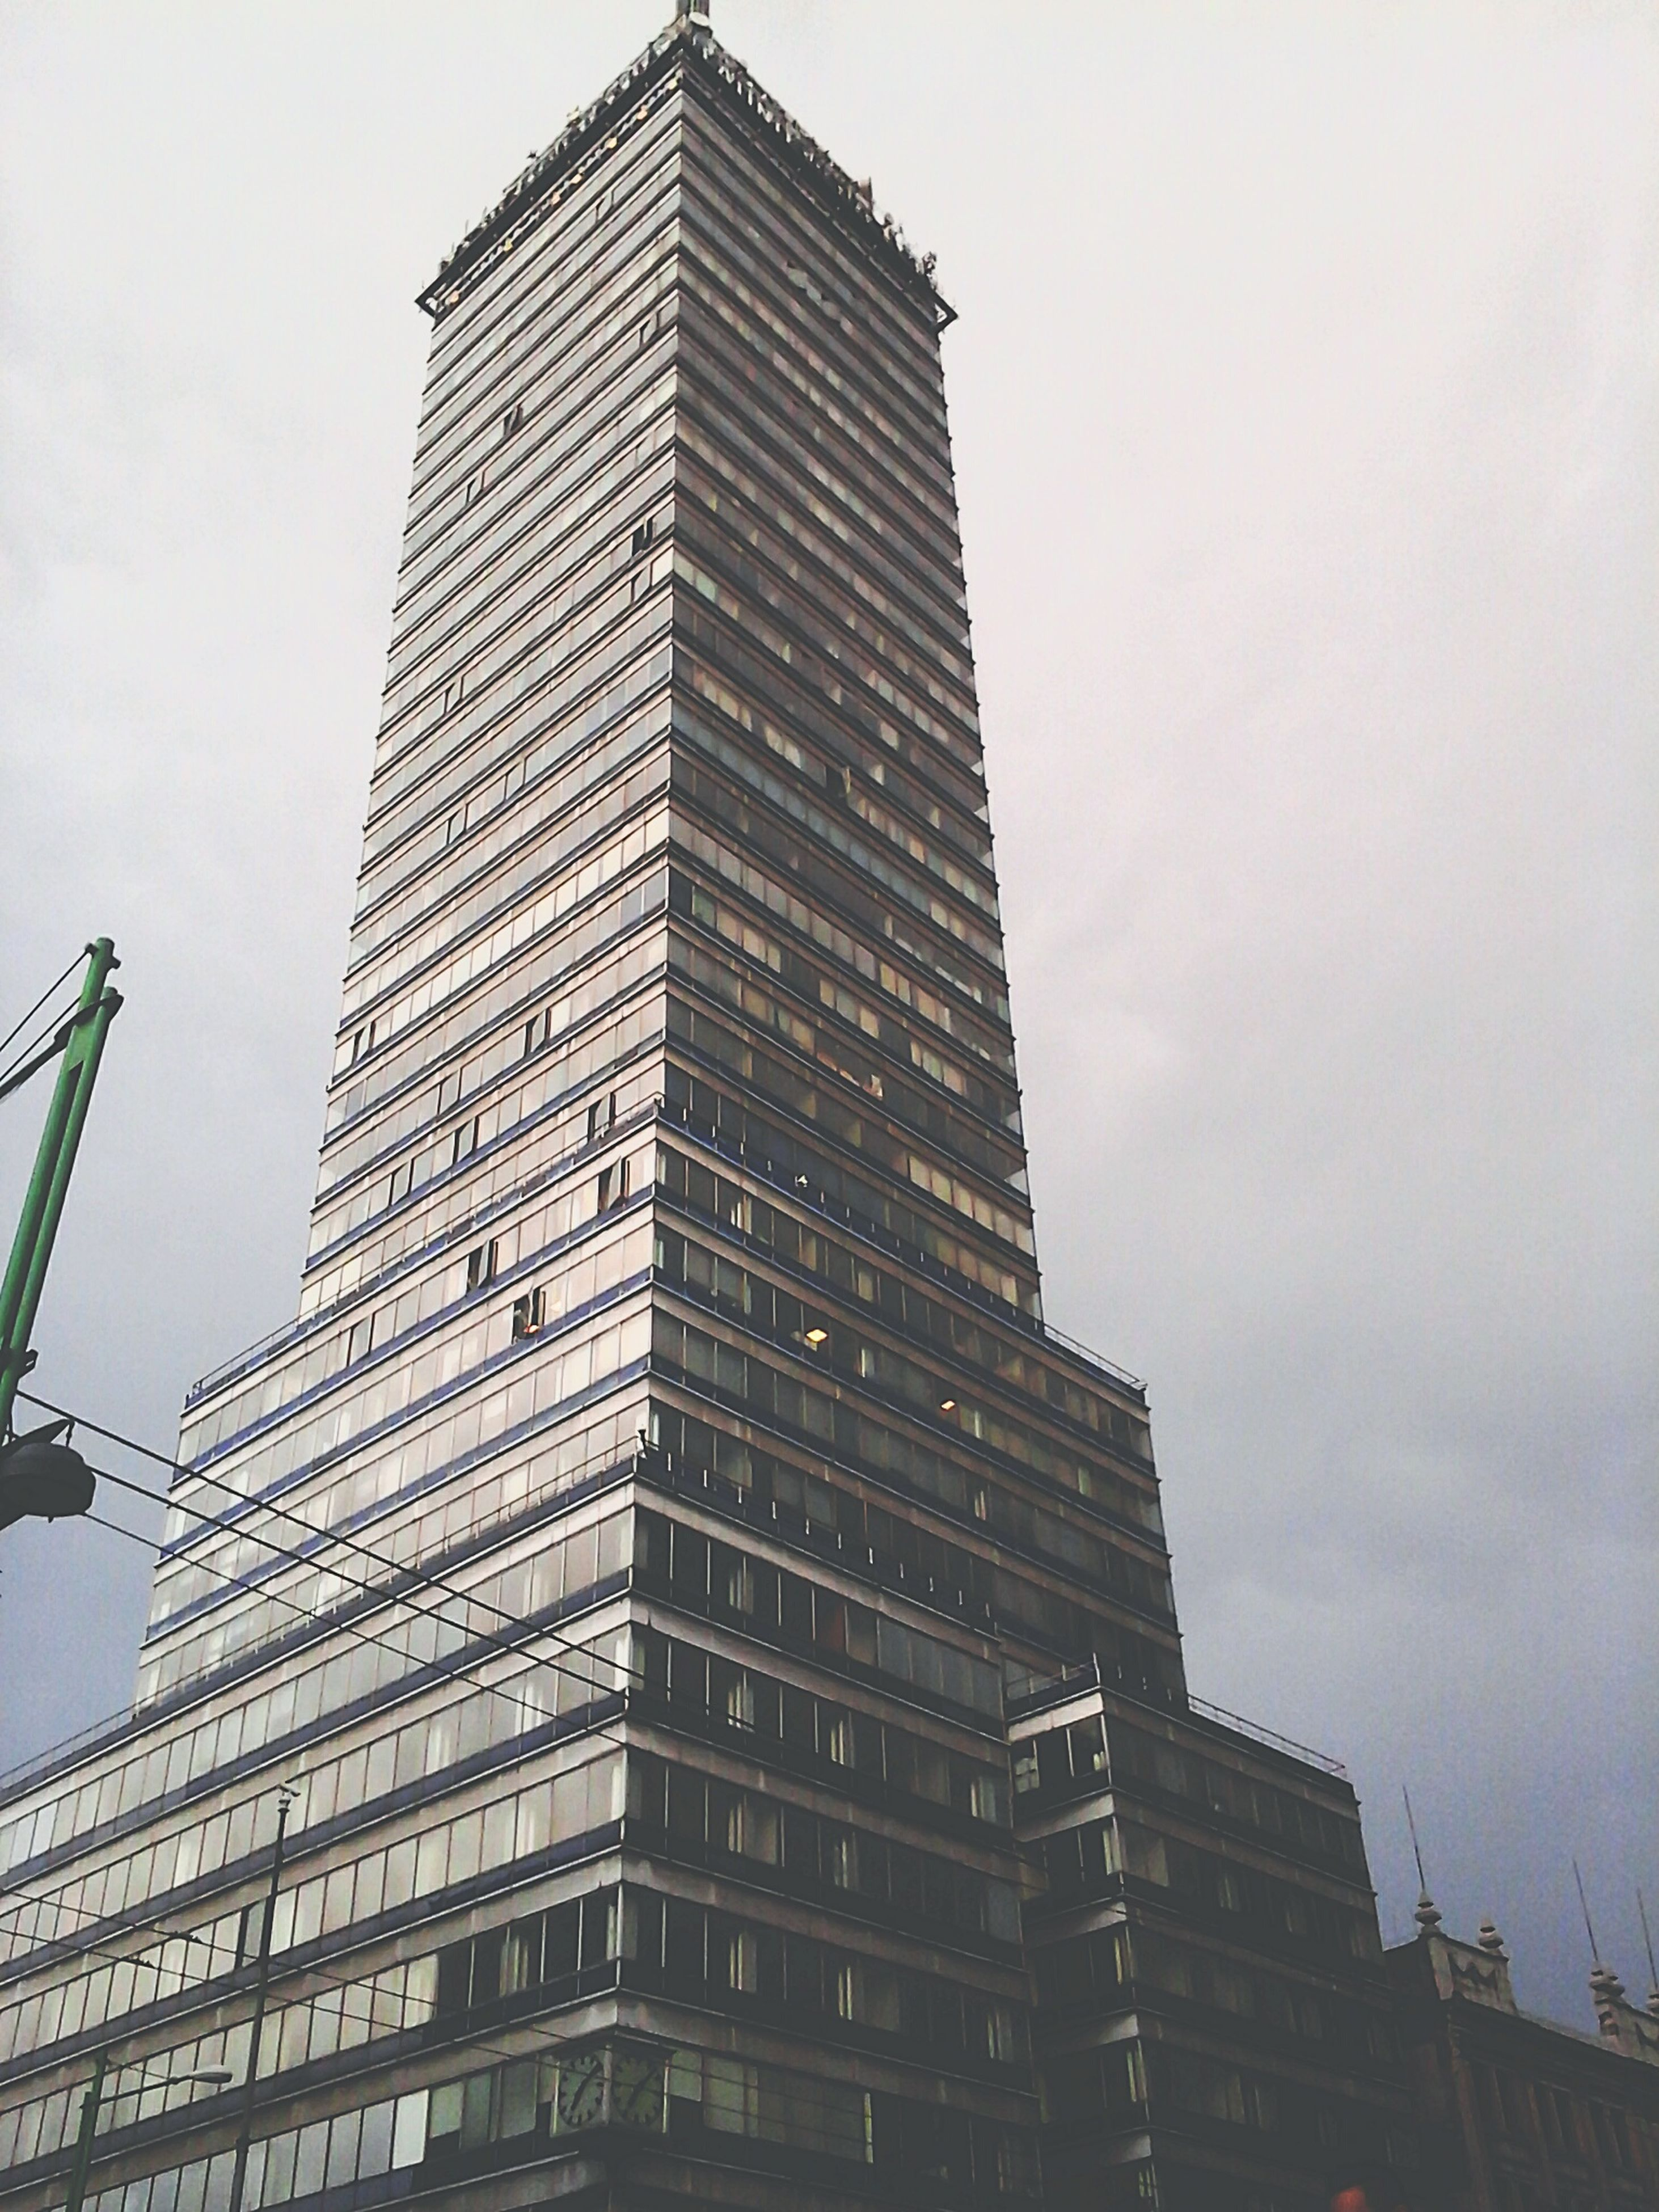 architecture, building exterior, built structure, low angle view, skyscraper, city, tall - high, modern, office building, tower, sky, building, tall, development, city life, outdoors, day, no people, residential building, glass - material